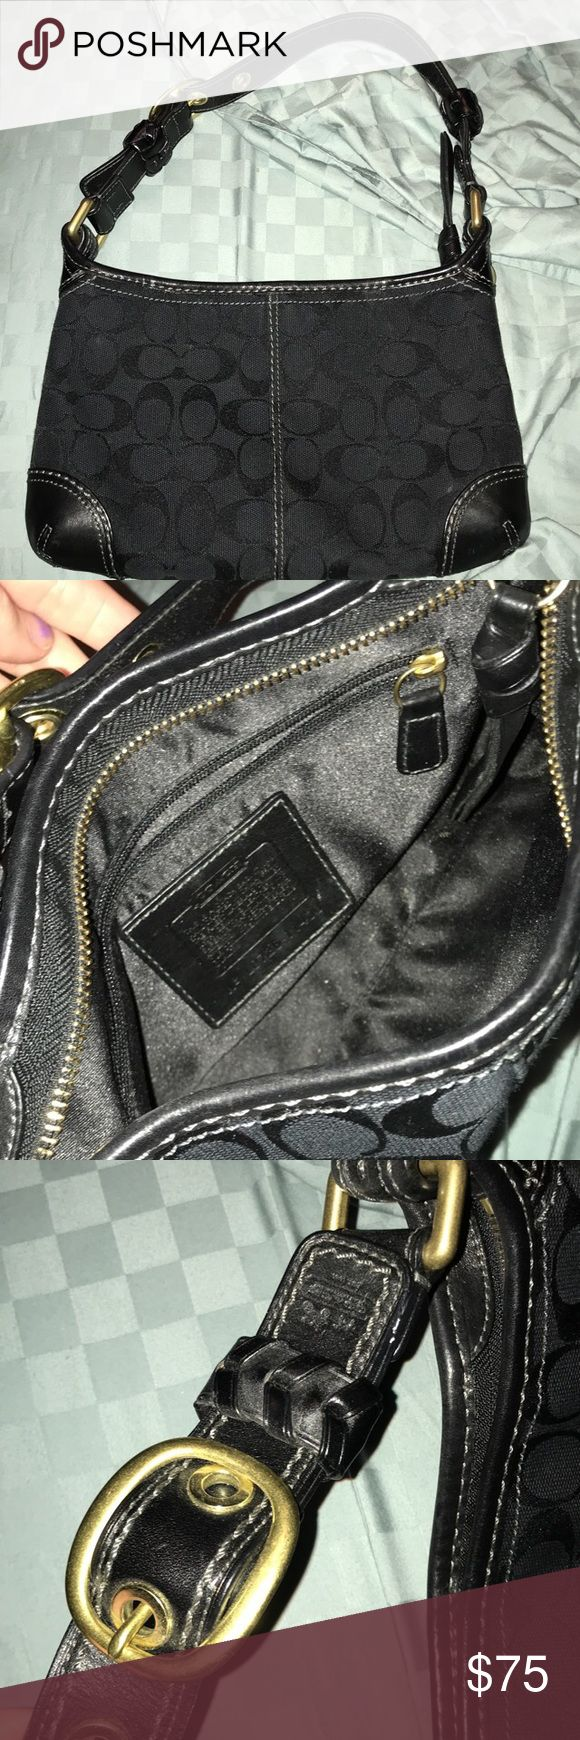 Small all black Coach purse All black coach shoulder purse with a buckle strap Coach Bags Shoulder Bags